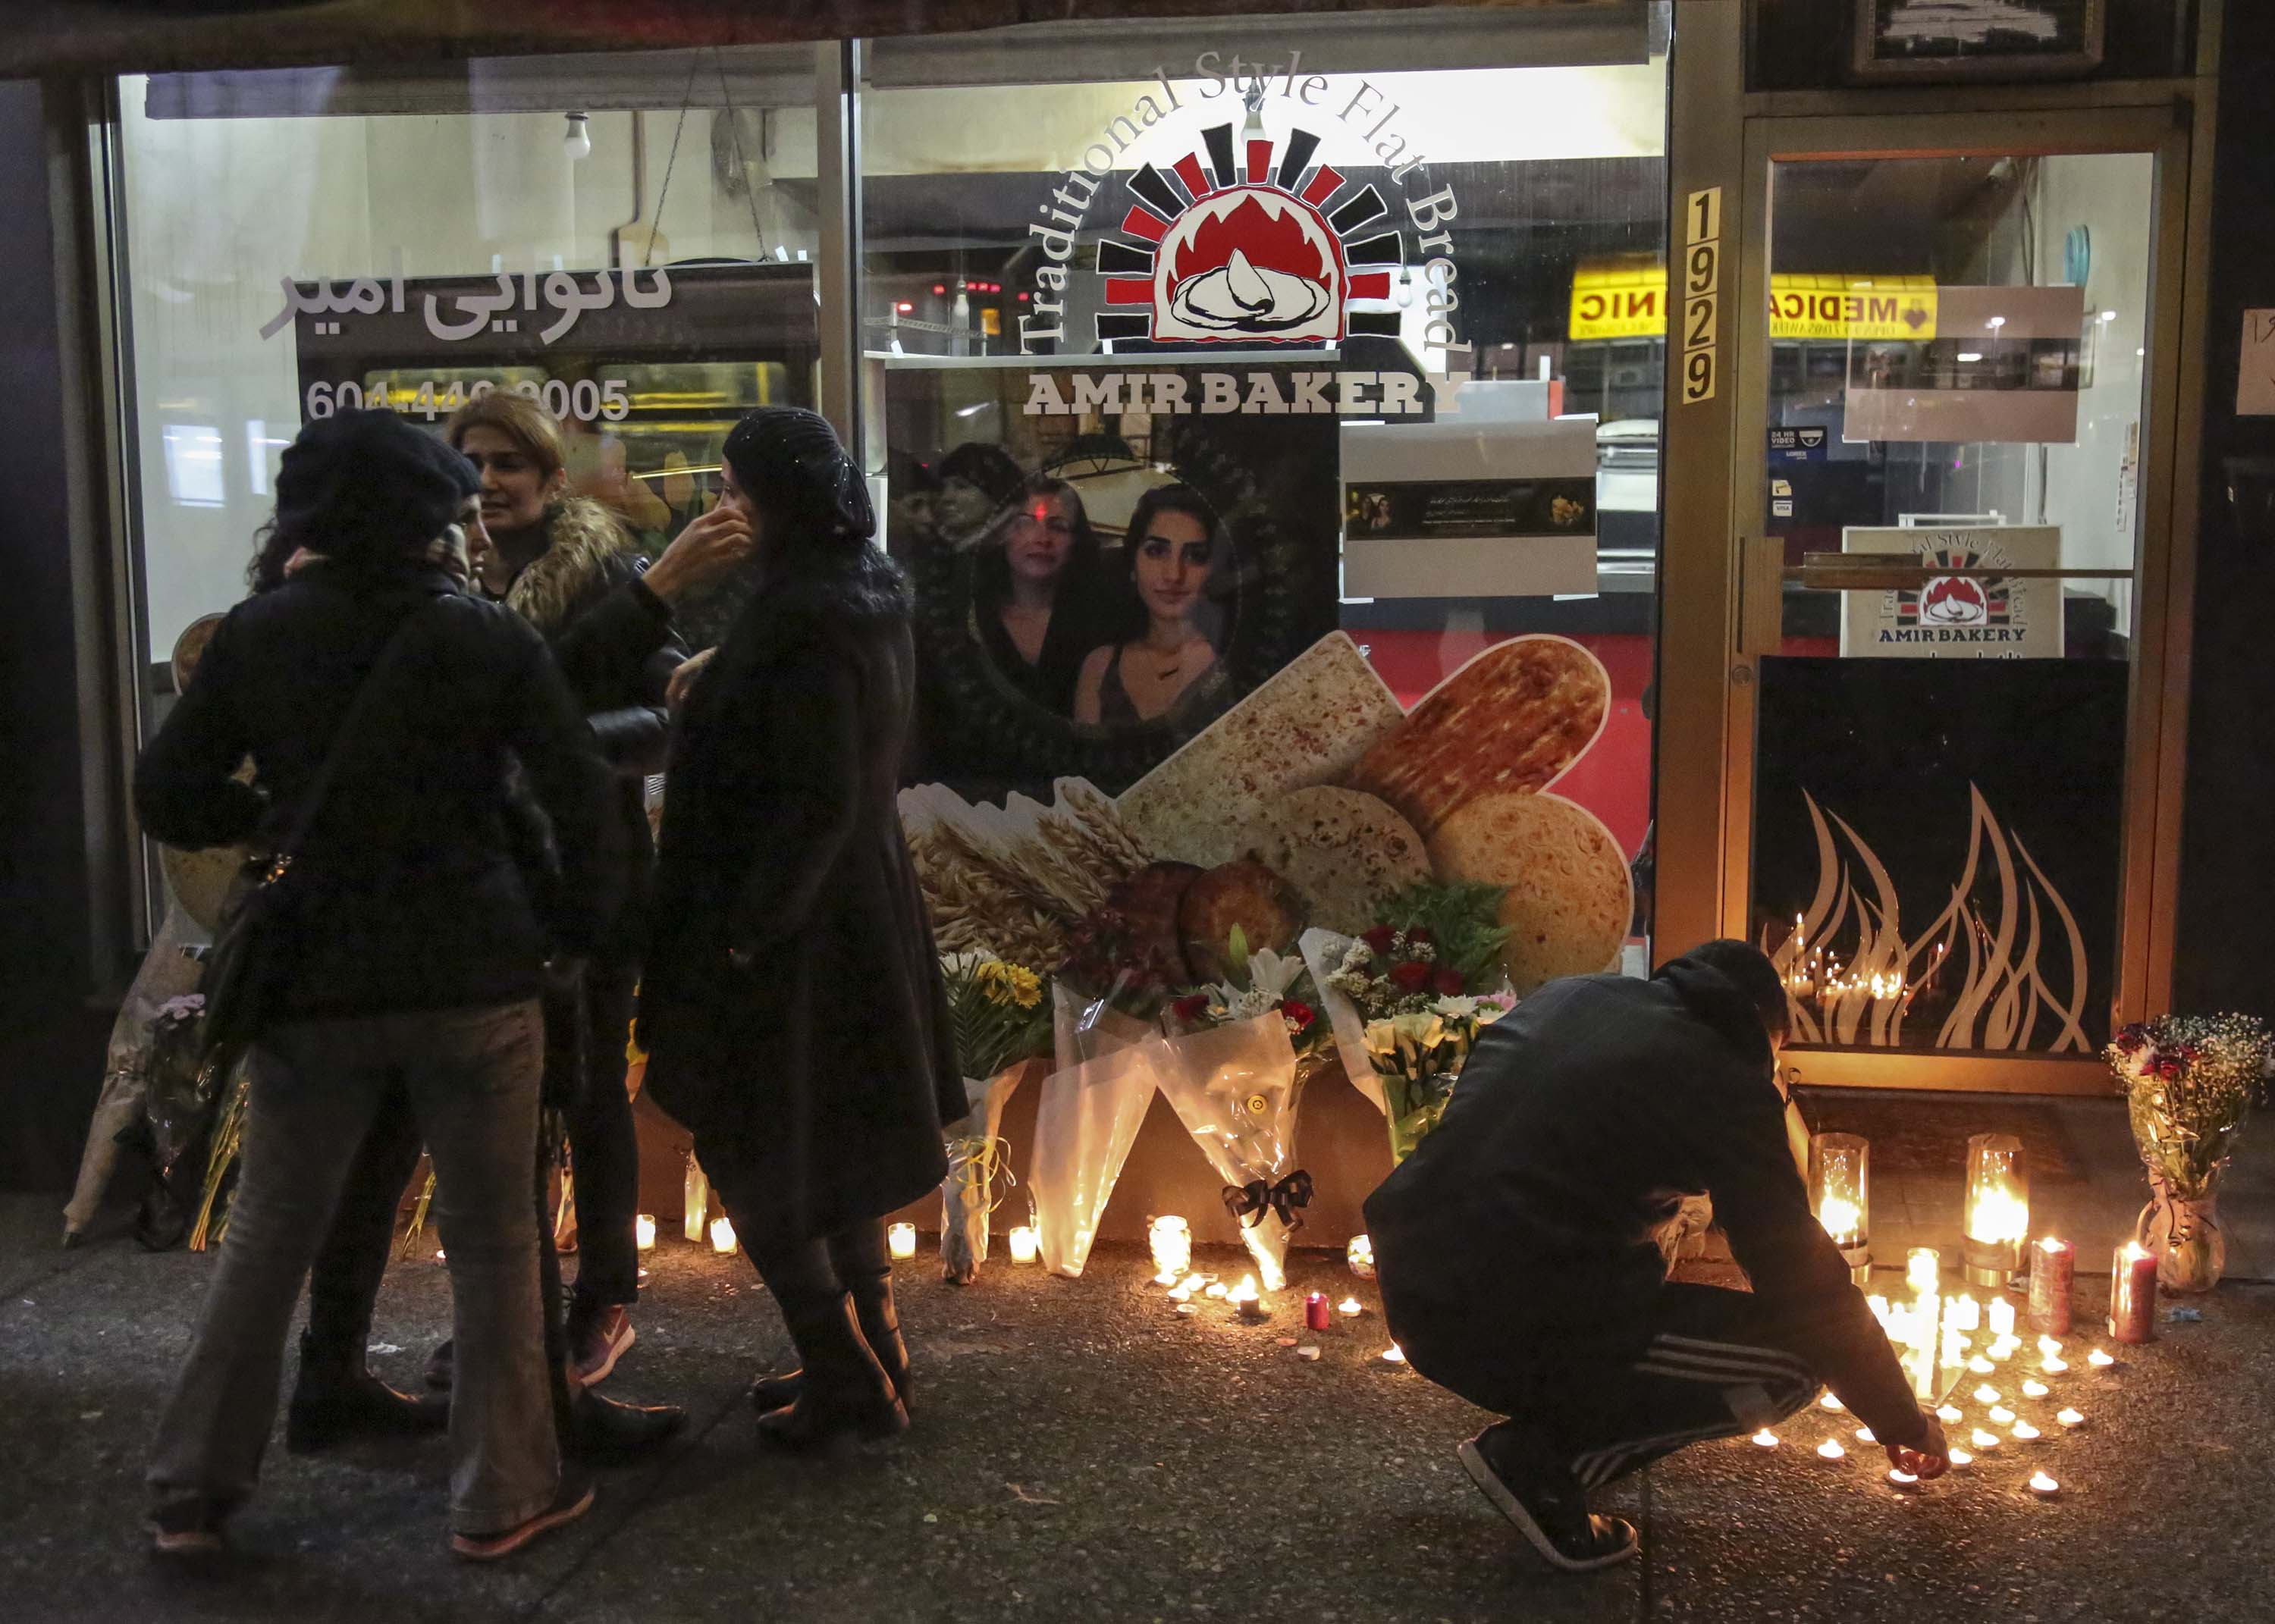 Mourners attend a vigil for crash victims outside the Amir Bakery in North Vancouver, Canada on January 8.